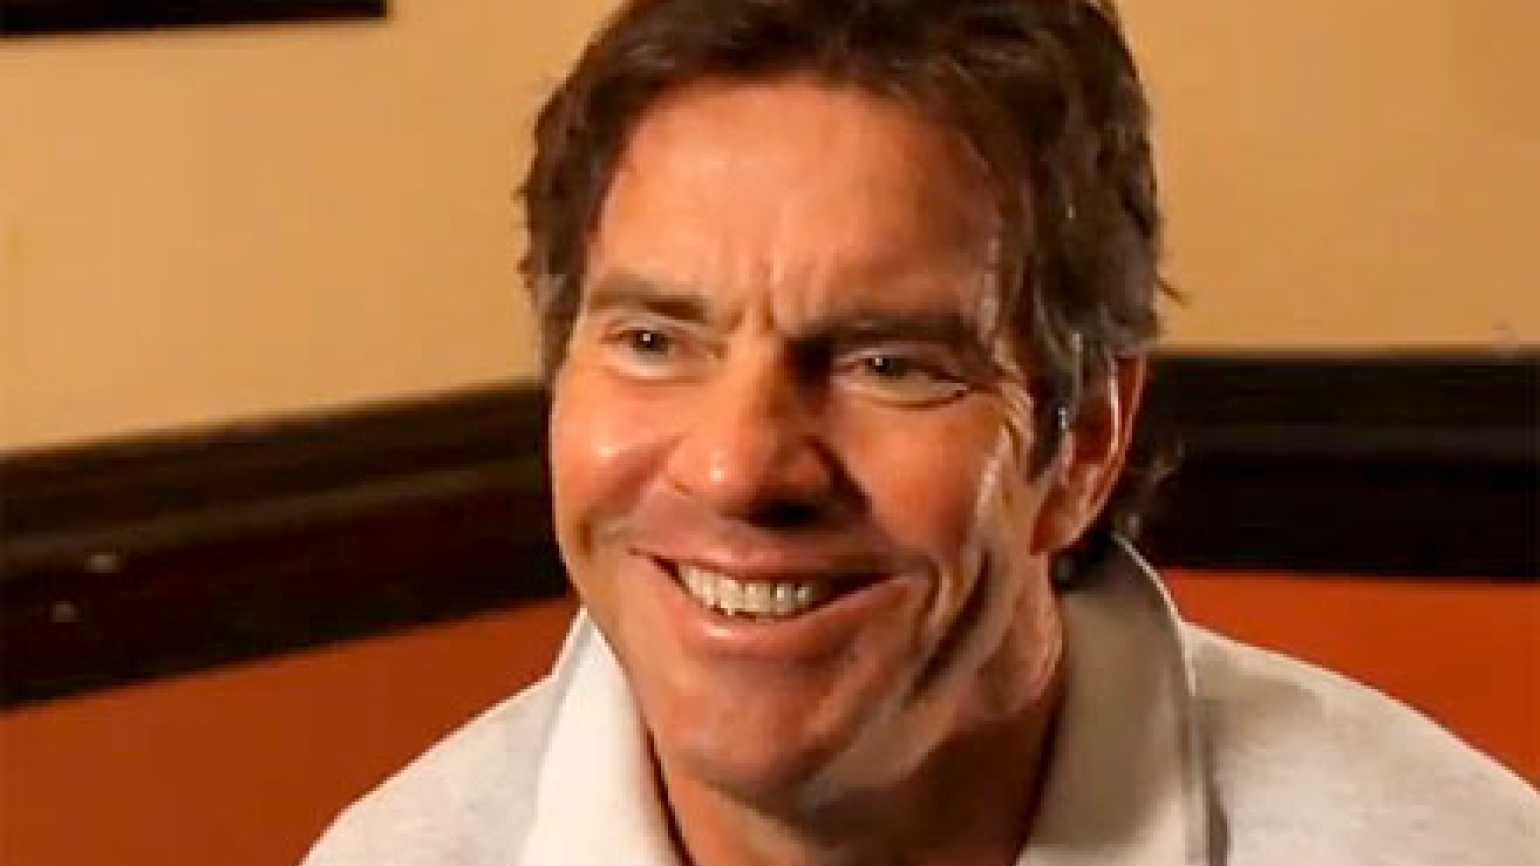 Actor Dennis Quaid speaks about the role faith plays in his life and career.